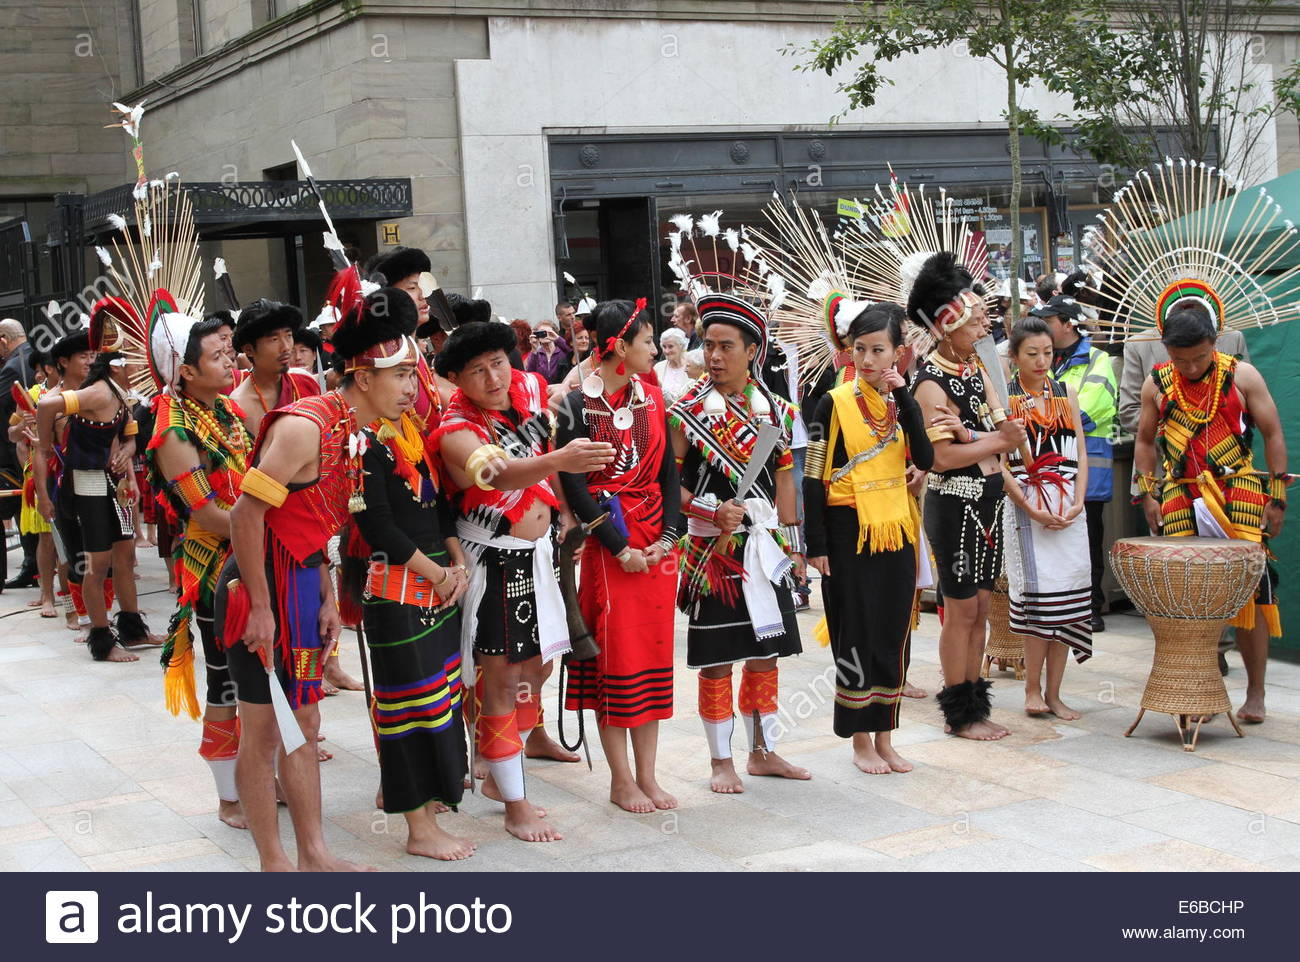 Dundee, Scotland, UK. 19th August, 2014. Nagaland's Folkloric ensemble wait to perform at City Square. Hundreds - Stock Image